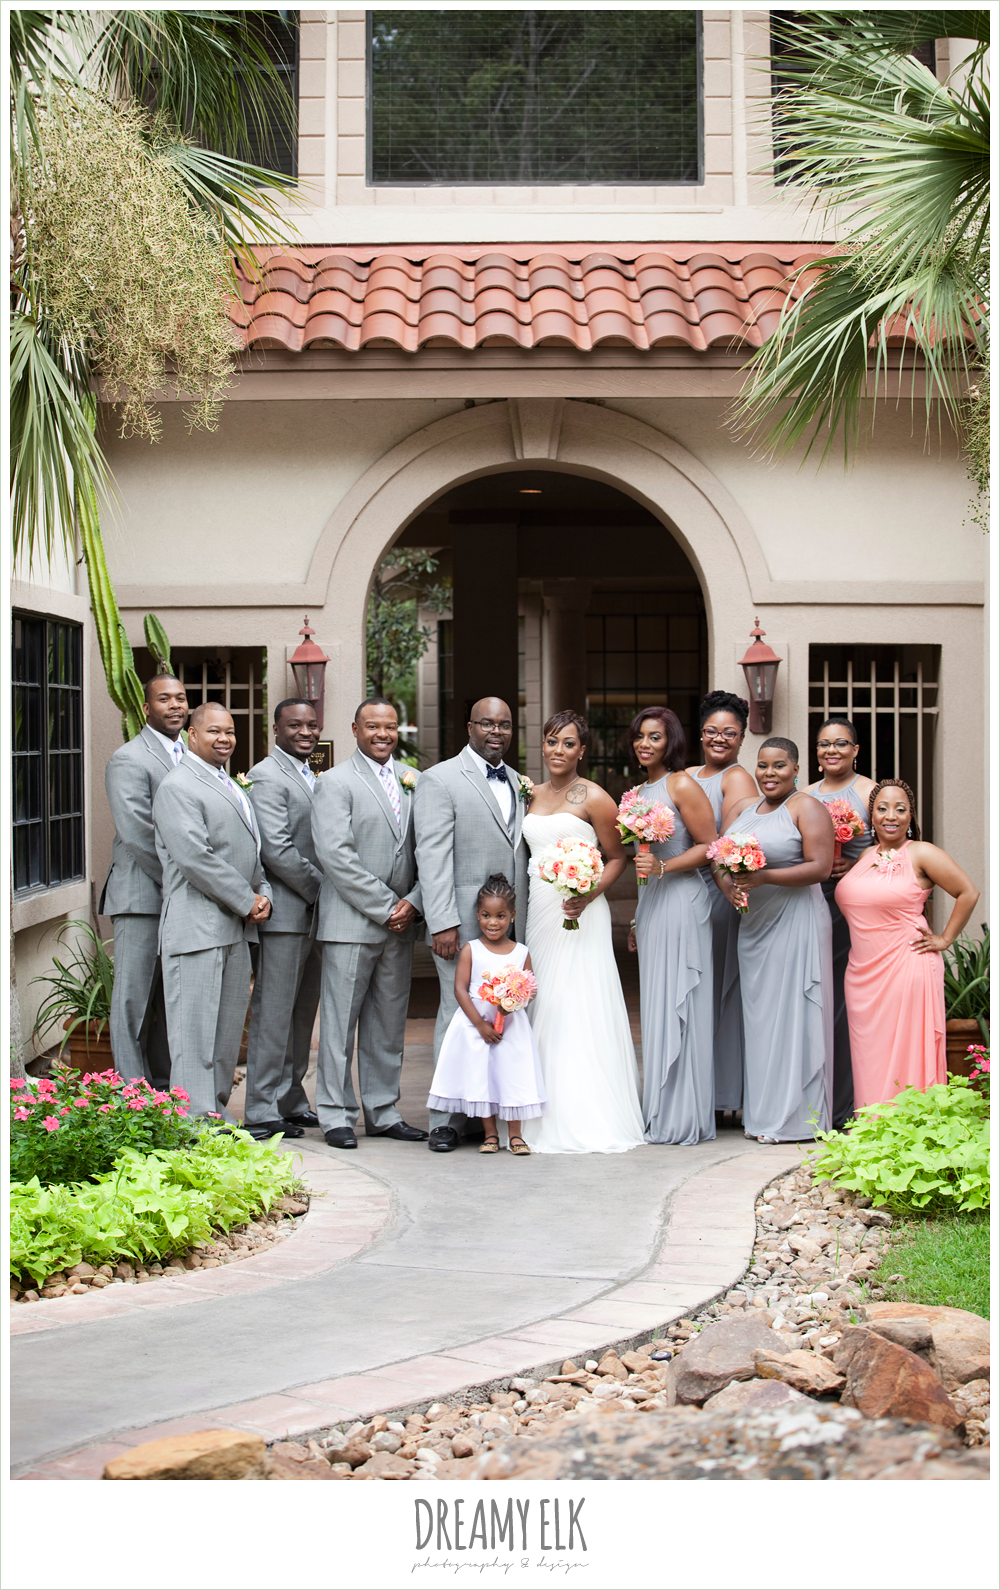 gray suits, gray bridesmaid dress, northwest forest conference center, dreamy elk photography and design